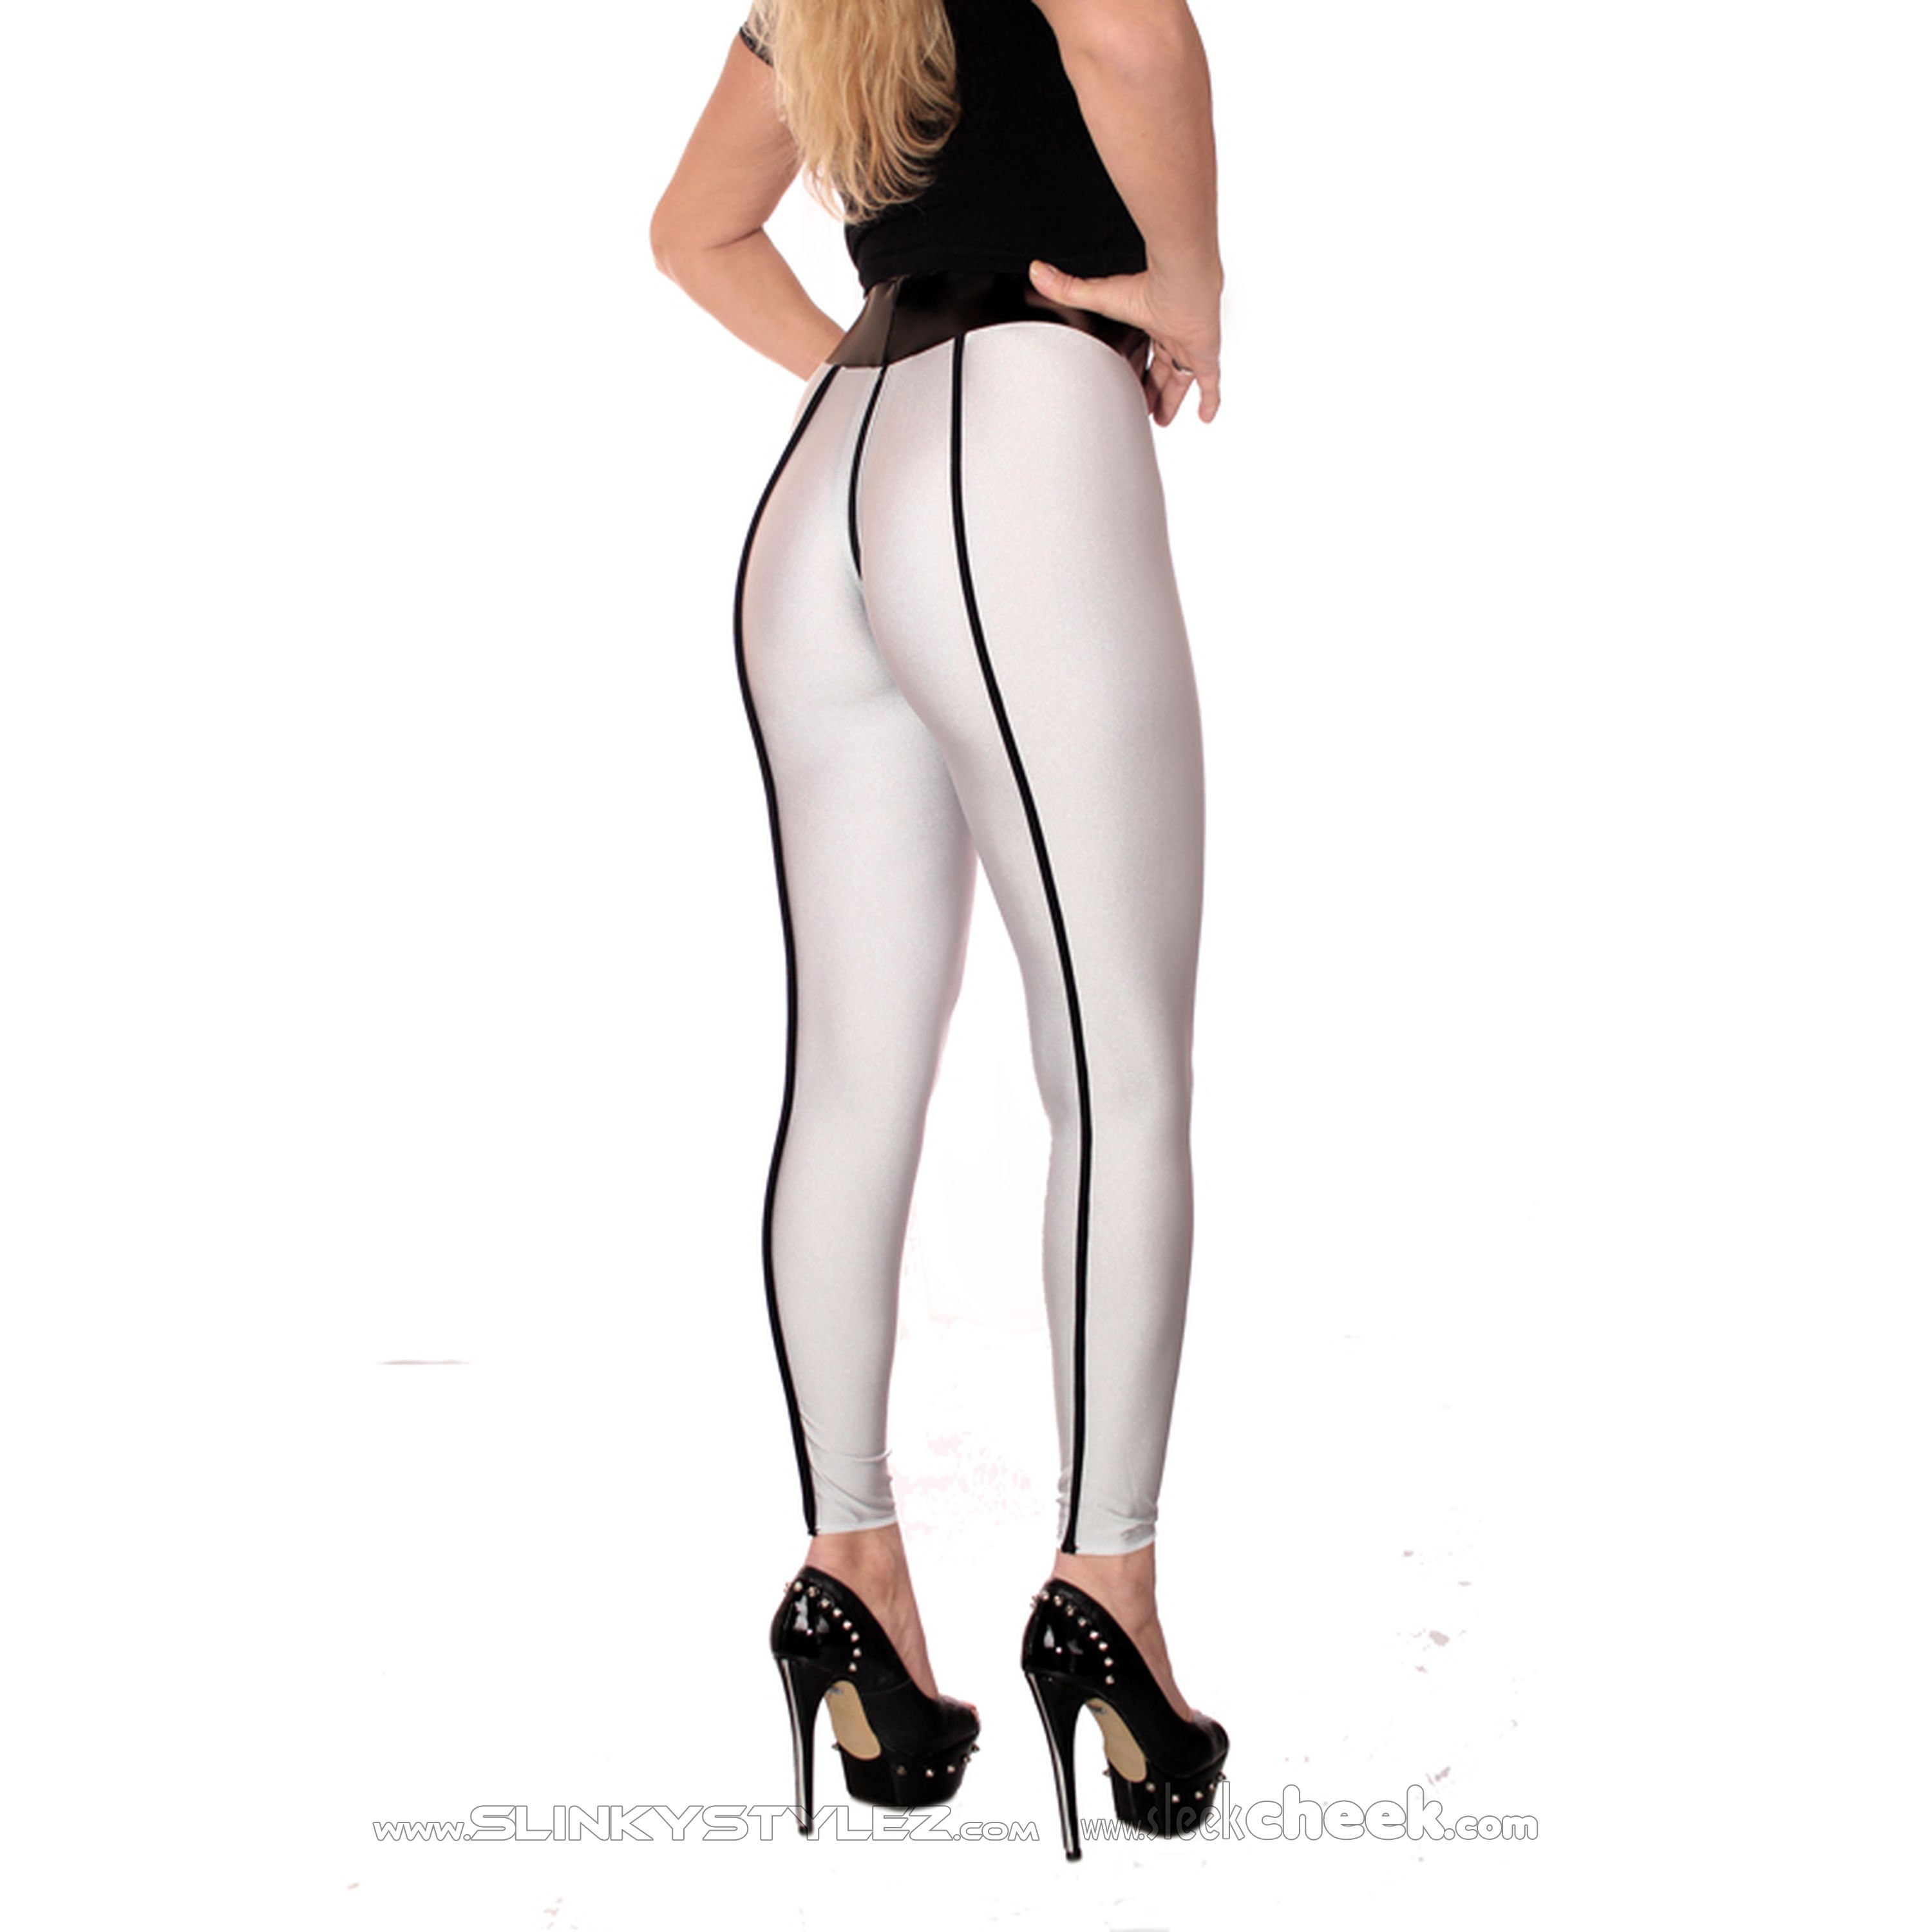 SLEEKCHEEK Ouvert Zip Leggings HL5A_ZV6 - QualitySpandex 190 - CUSTOM CONFIGURE (L57D)